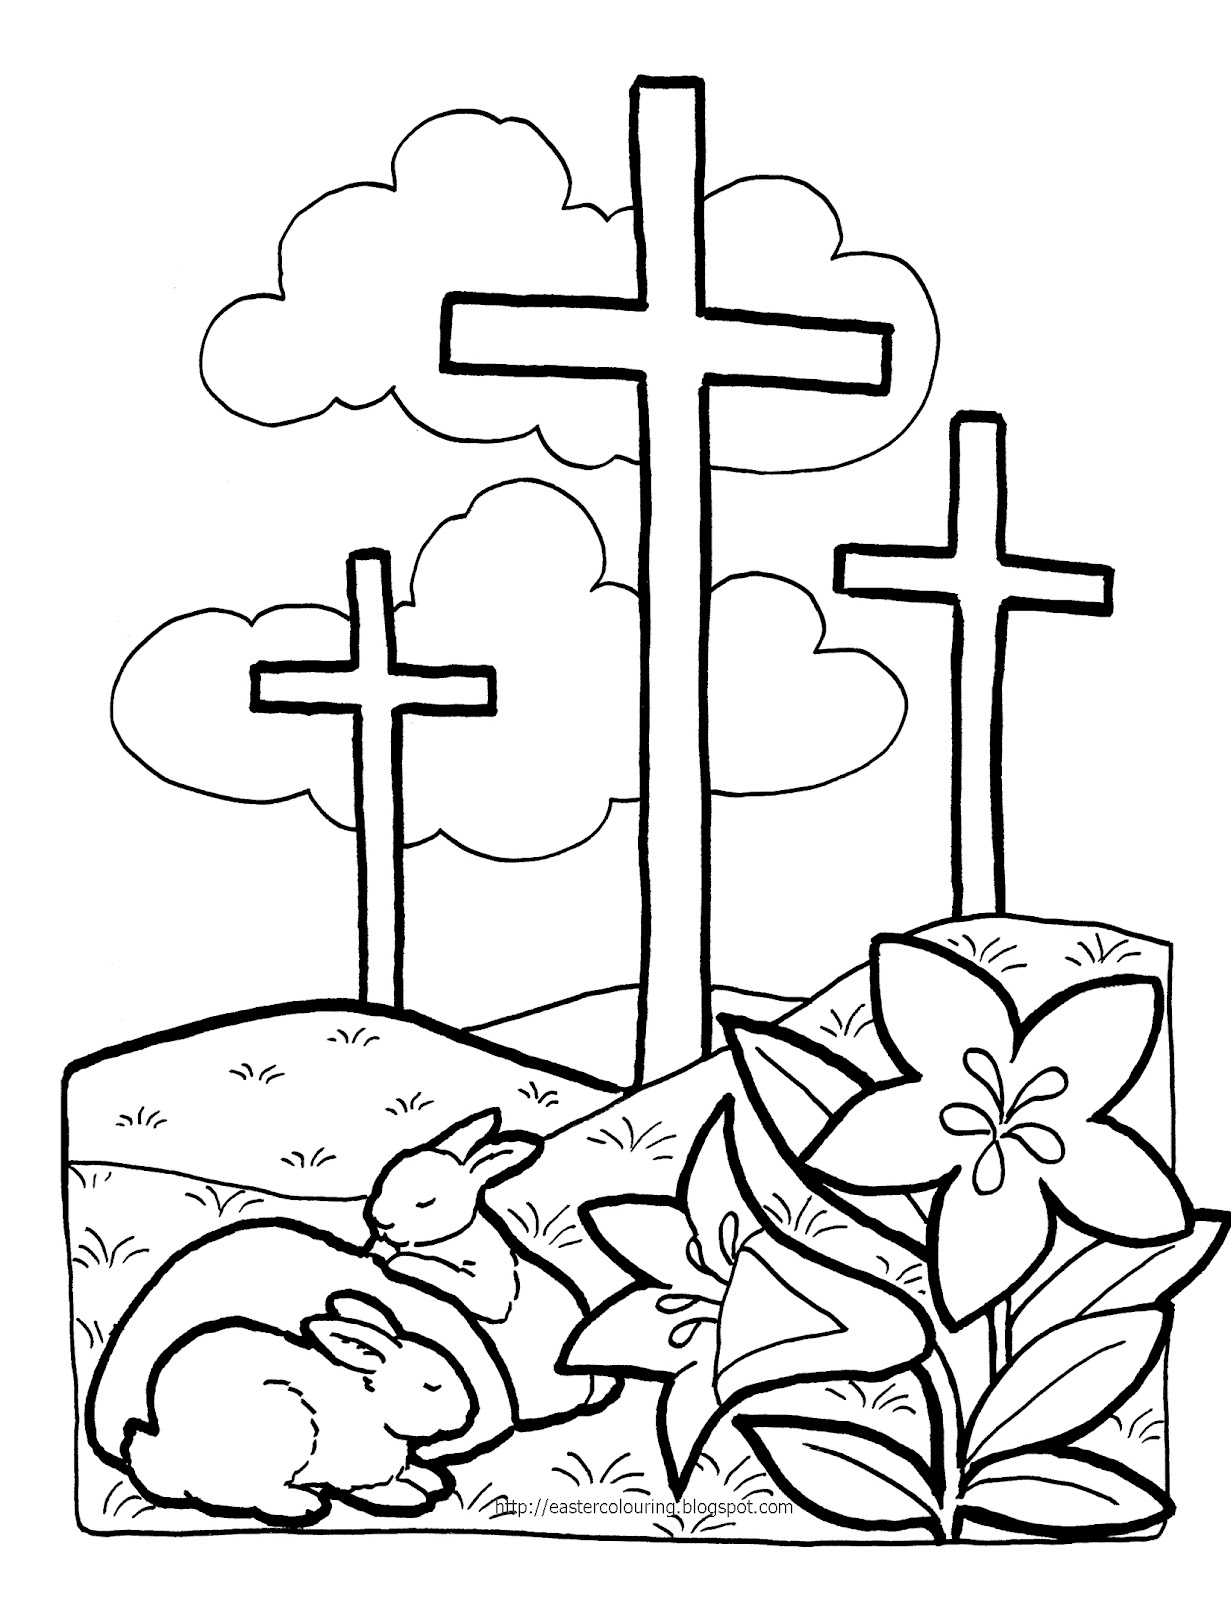 EASTER COLOURING RELIGIOUS COLORING PAGES